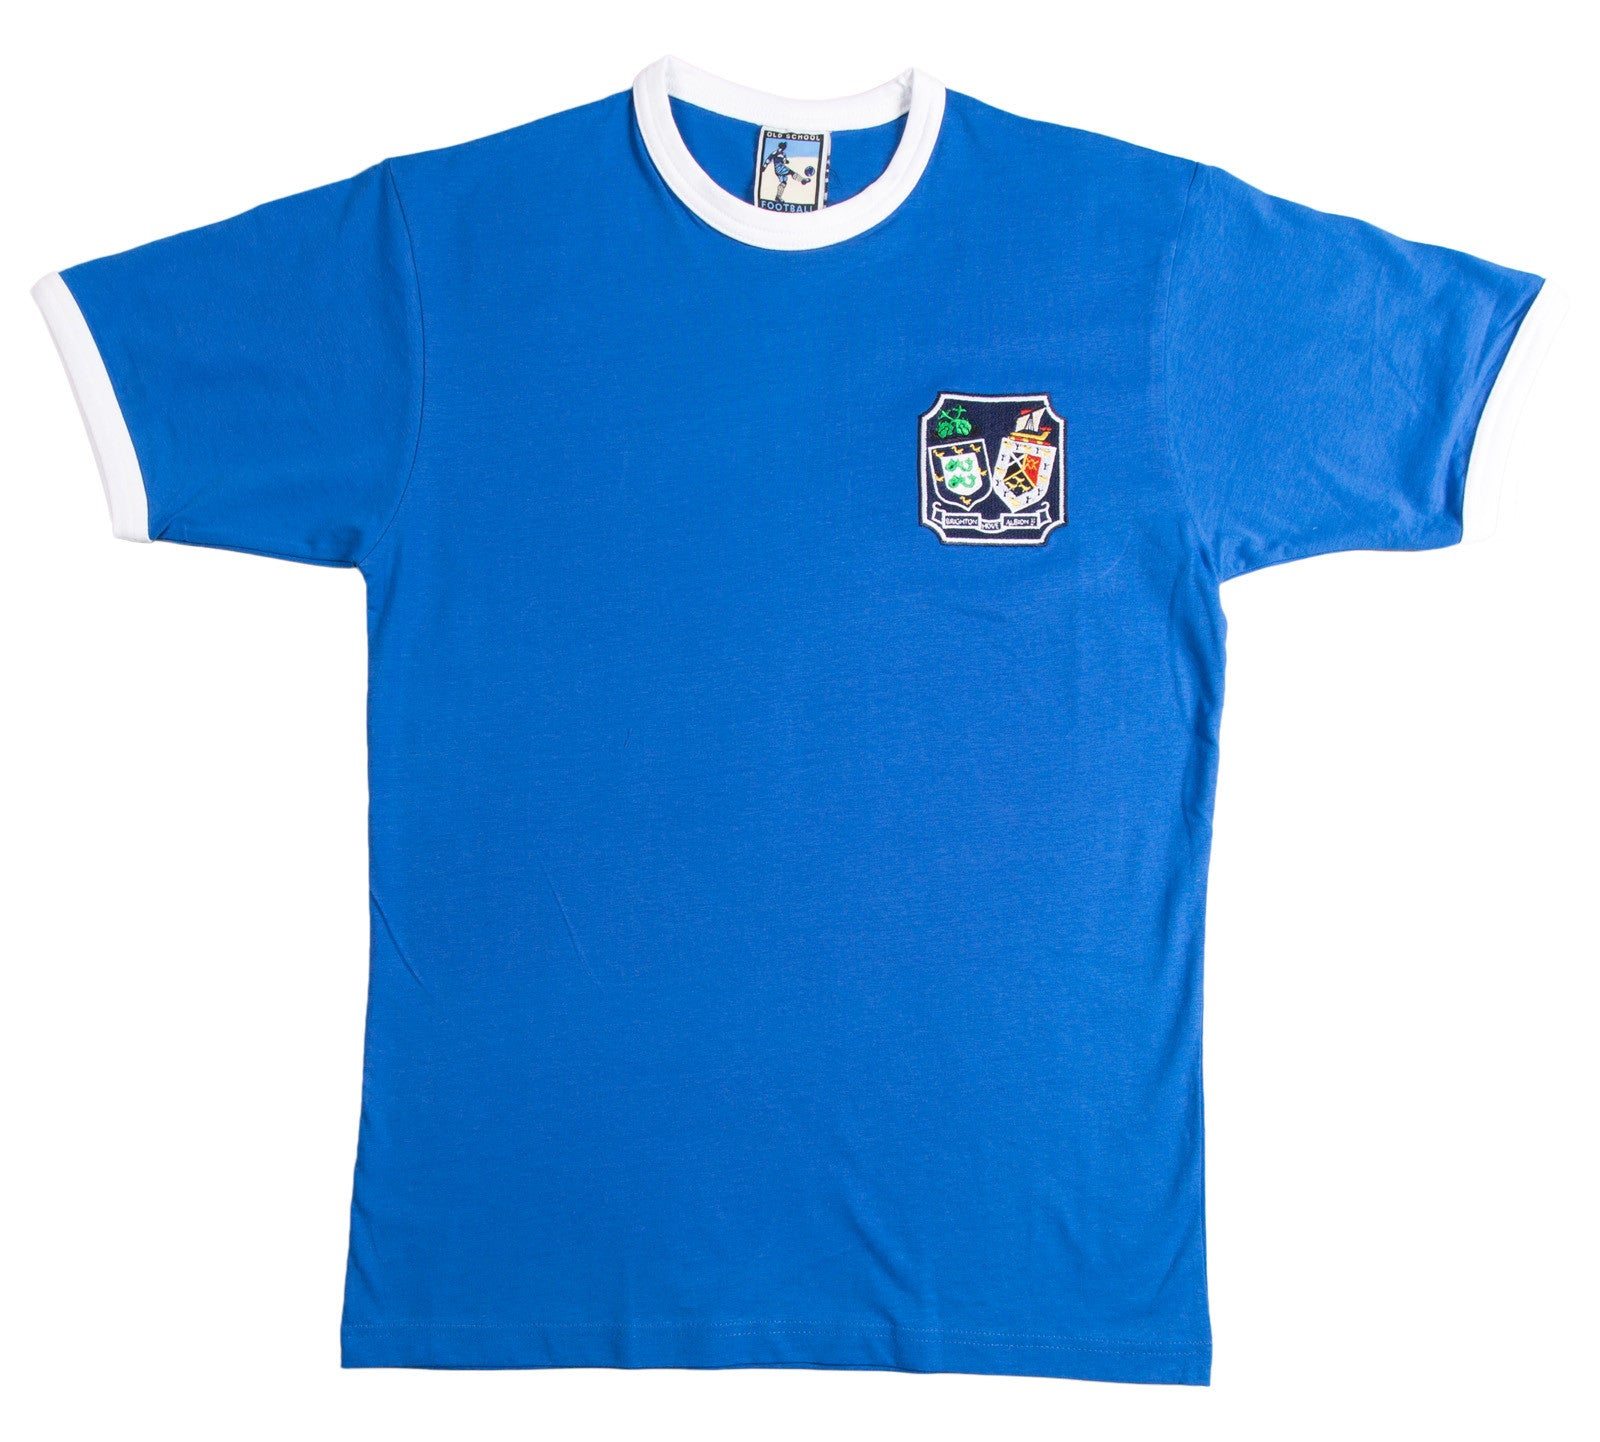 Brighton and Hove Albion Retro Football T Shirt 1940s - 1970s - T-shirt